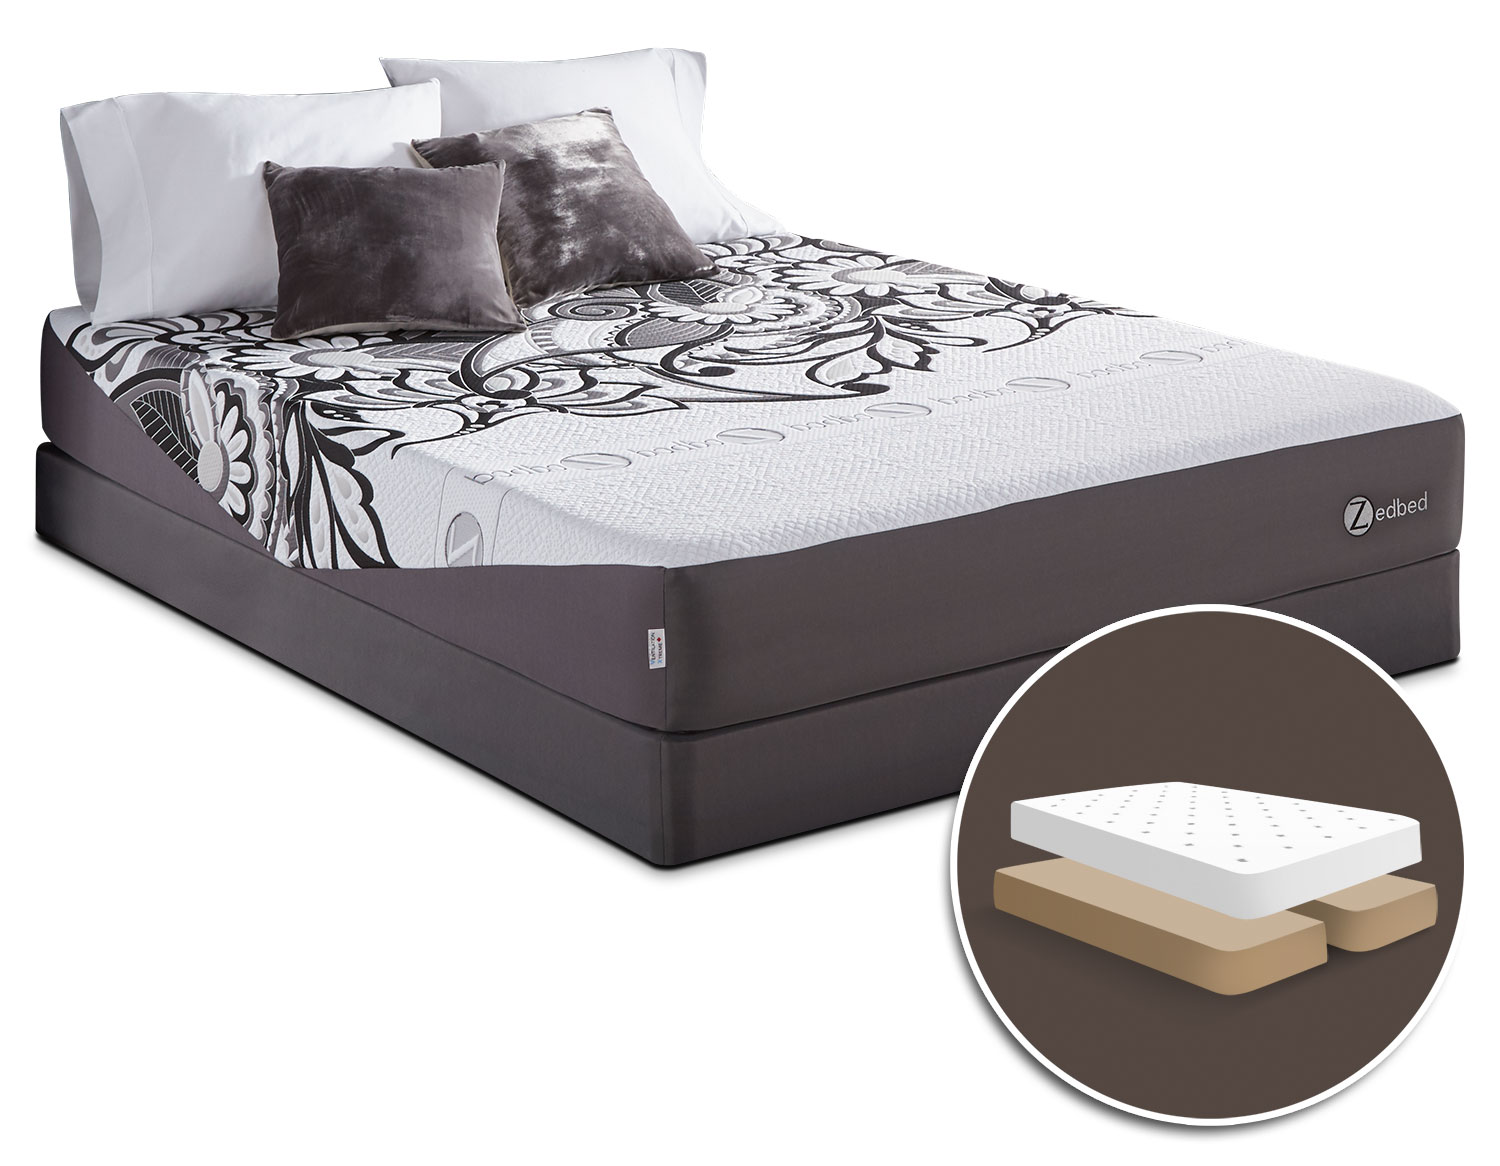 Mattresses and Bedding - Zedbed Vertuo Tight-Top Queen Set with Split Boxspring